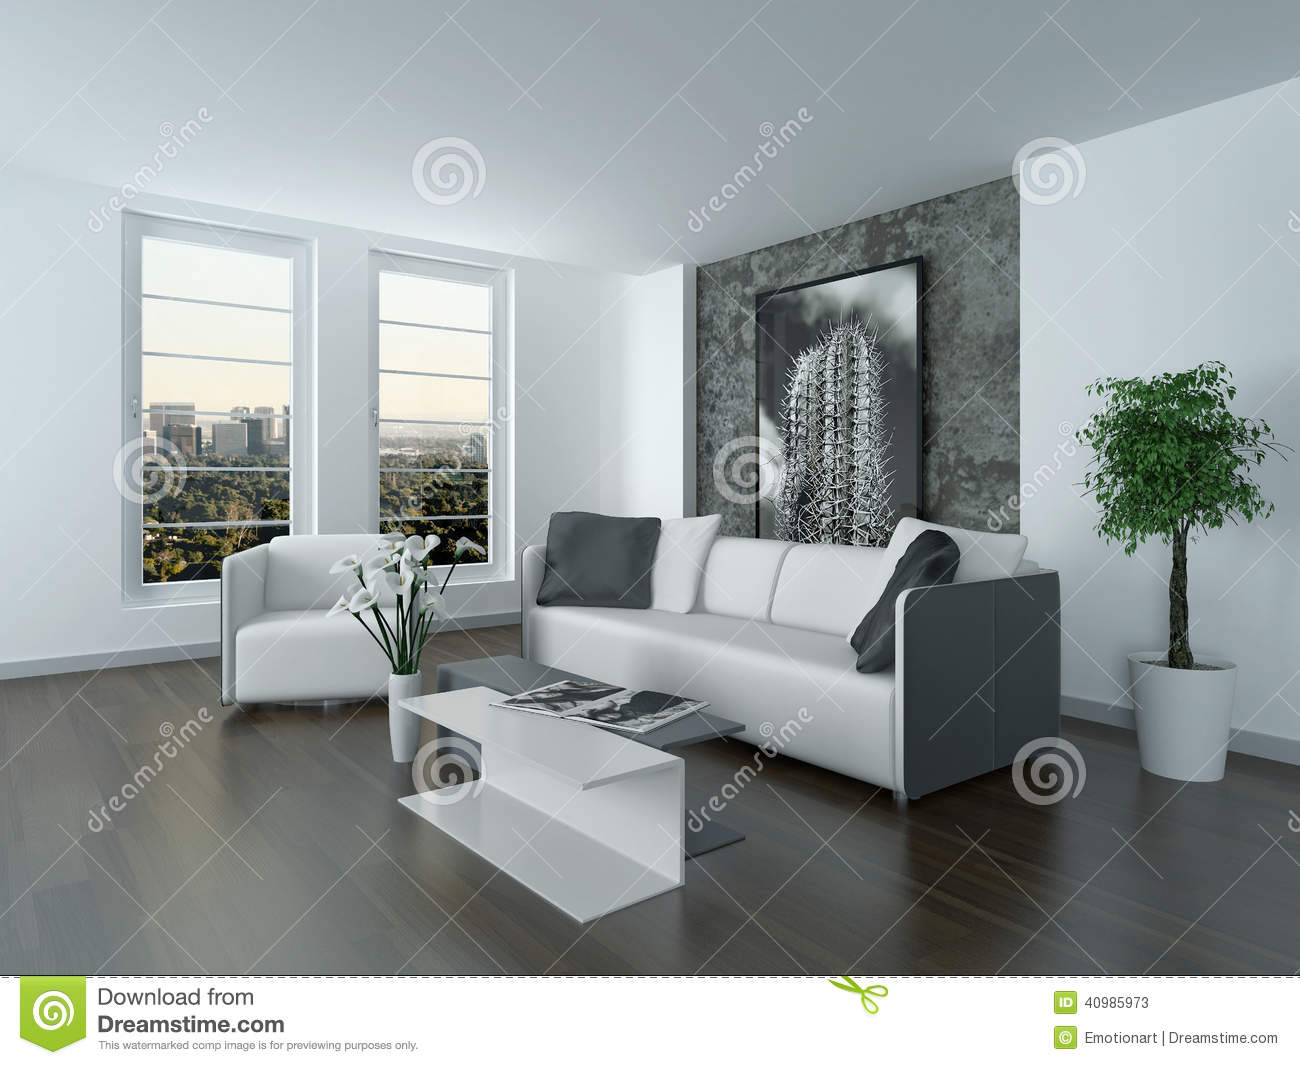 Modern grey and white sitting room interior stock illustration image 40985973 - White sitting rooms ...